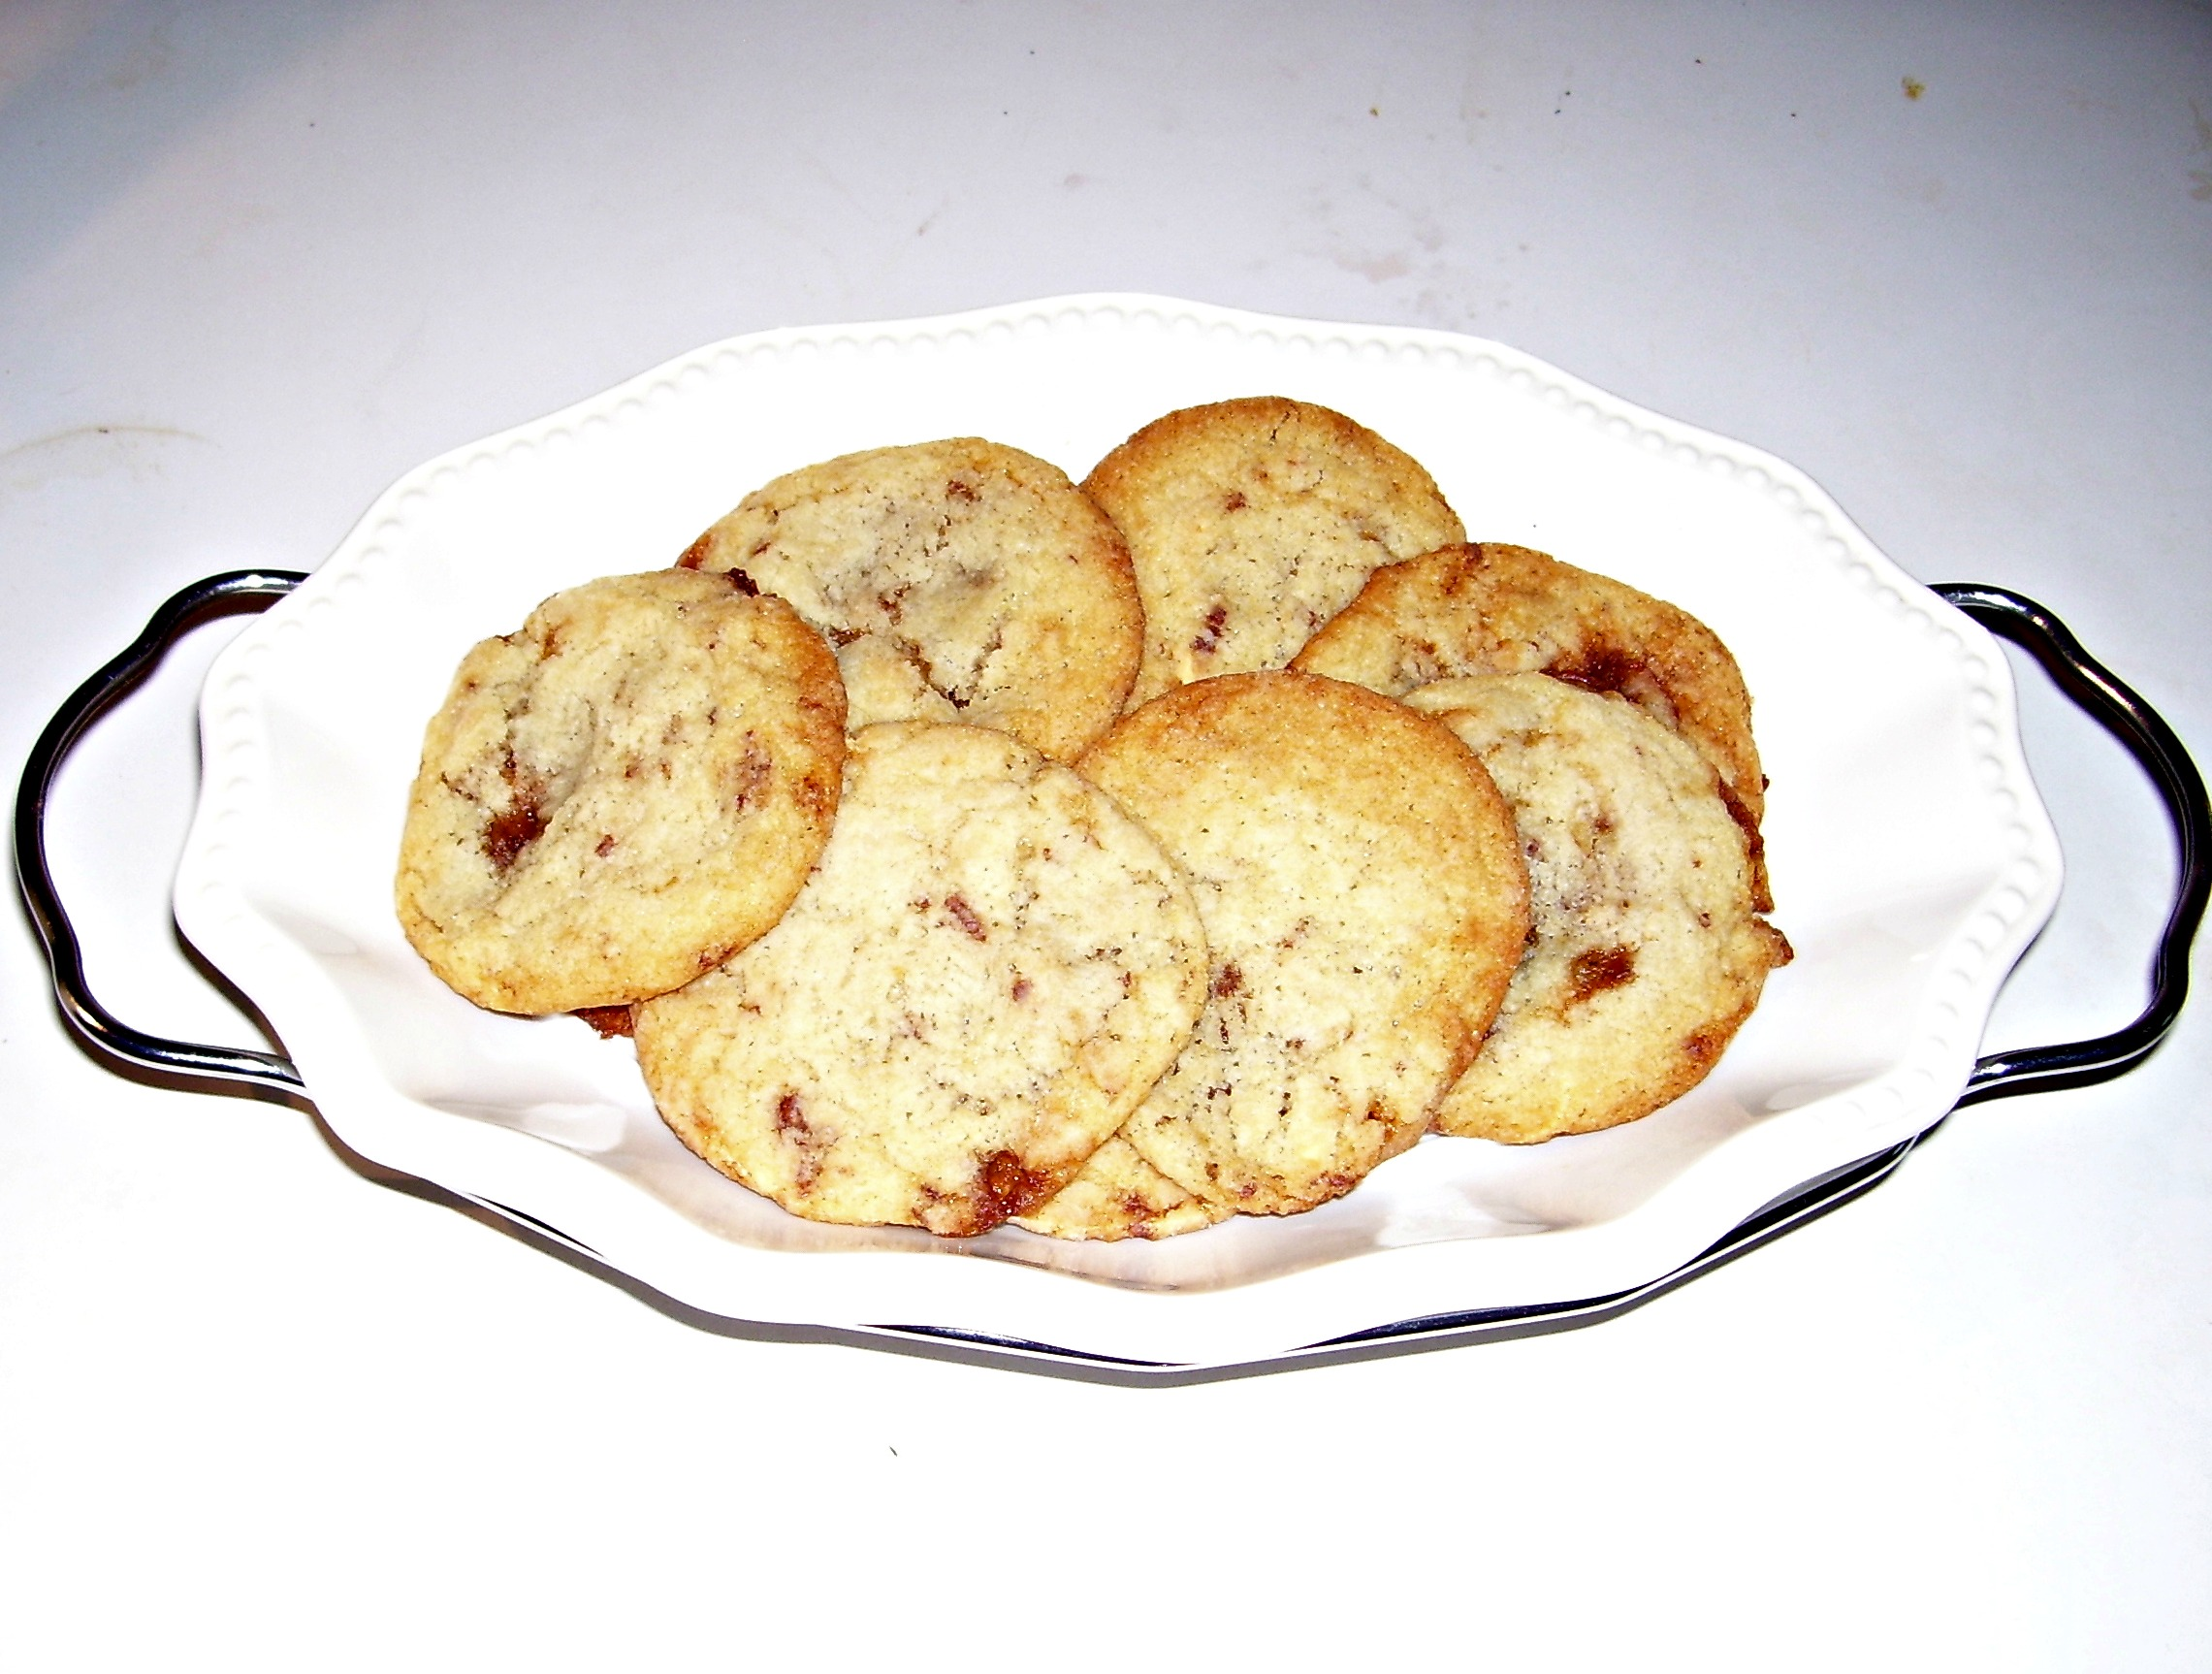 Baby Ruth Cookies is a delicious cookie of 1920s made with Baby Ruth Candy Bars.